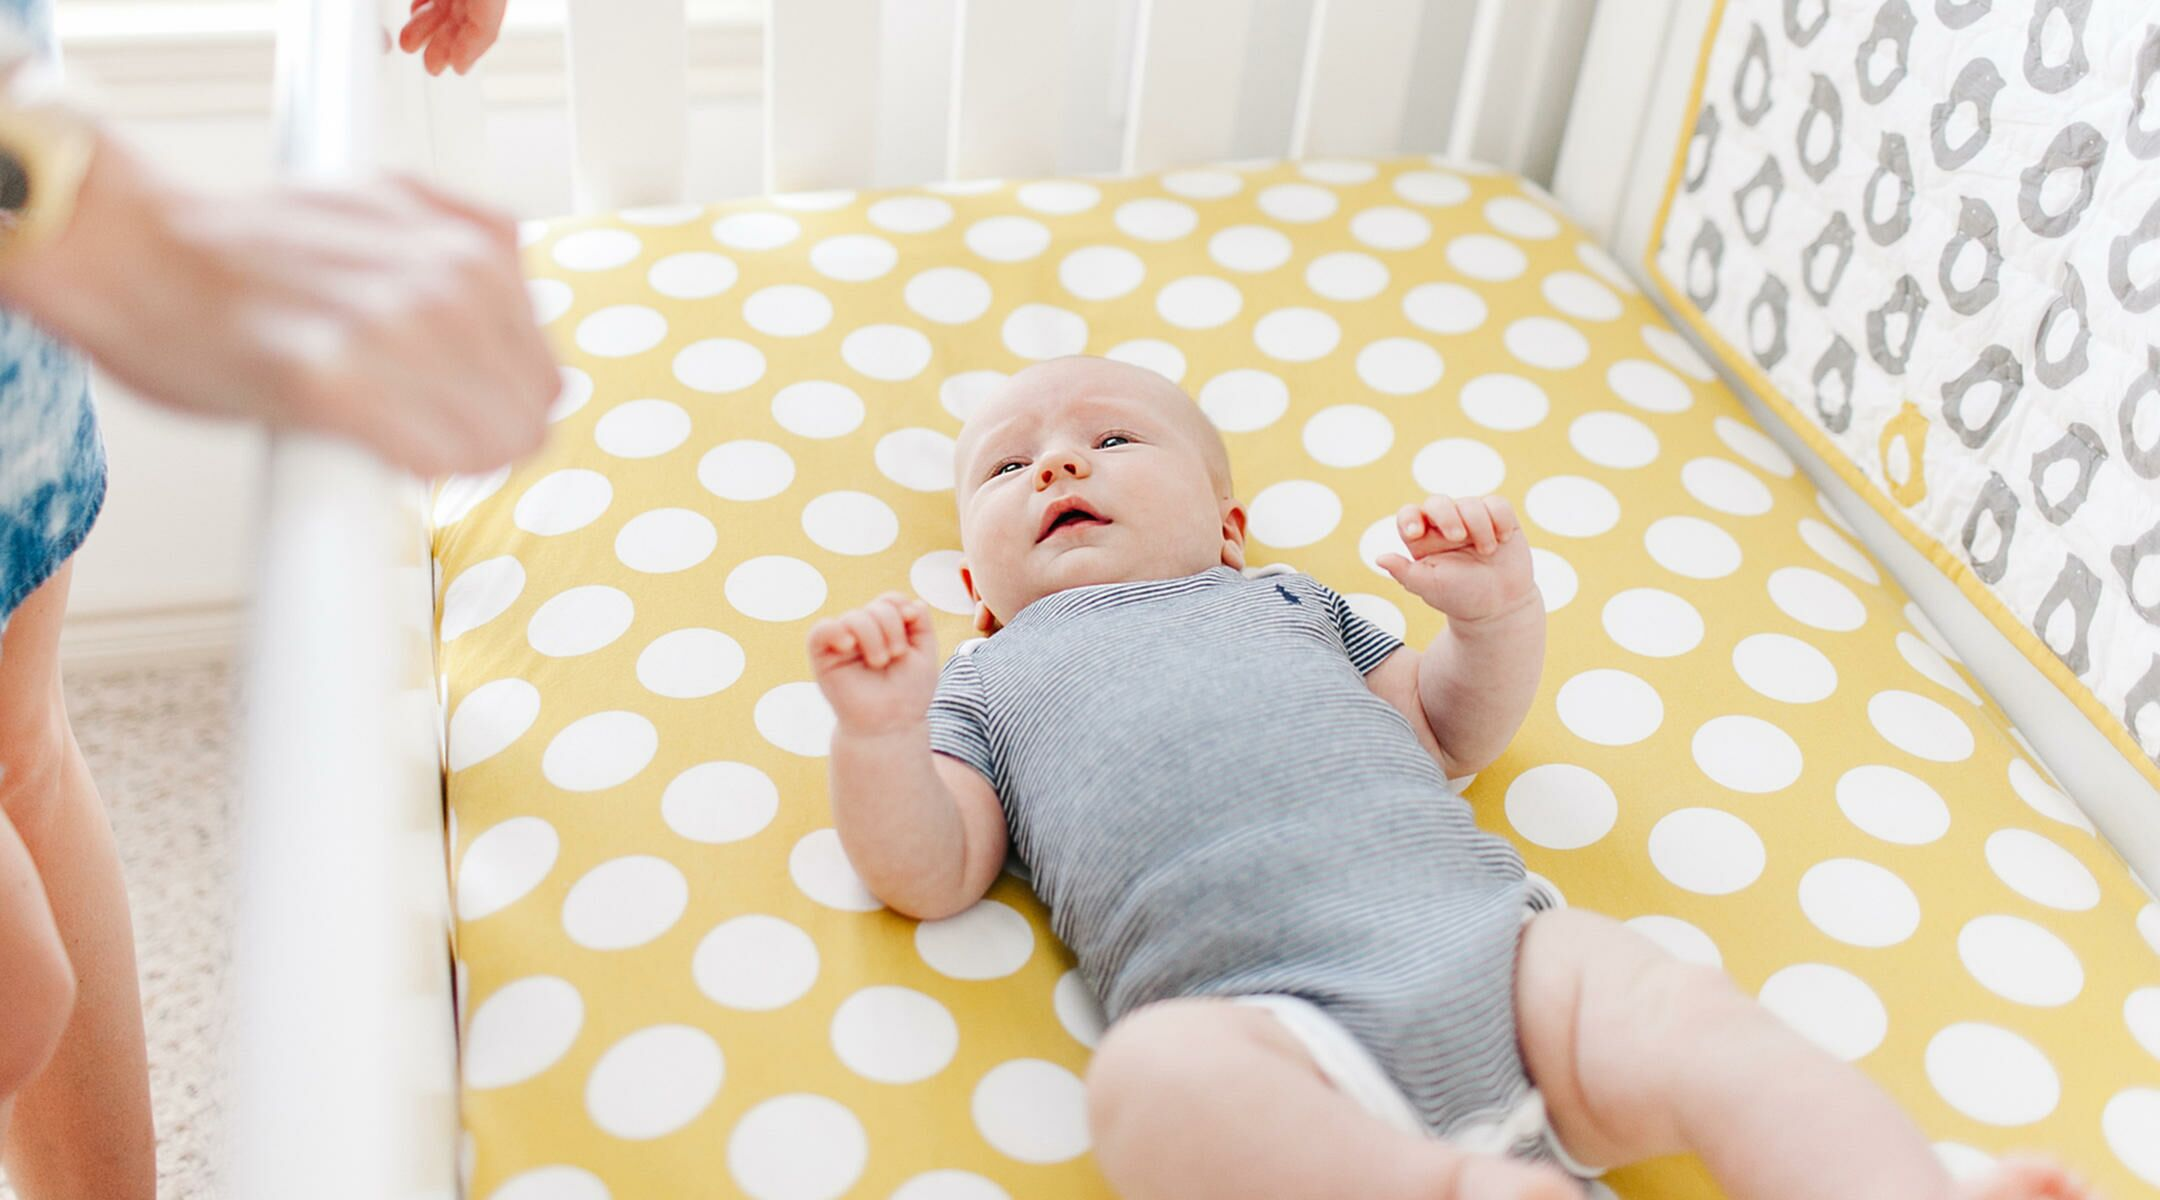 SIDS Risk Is Higher for Children in Certain States